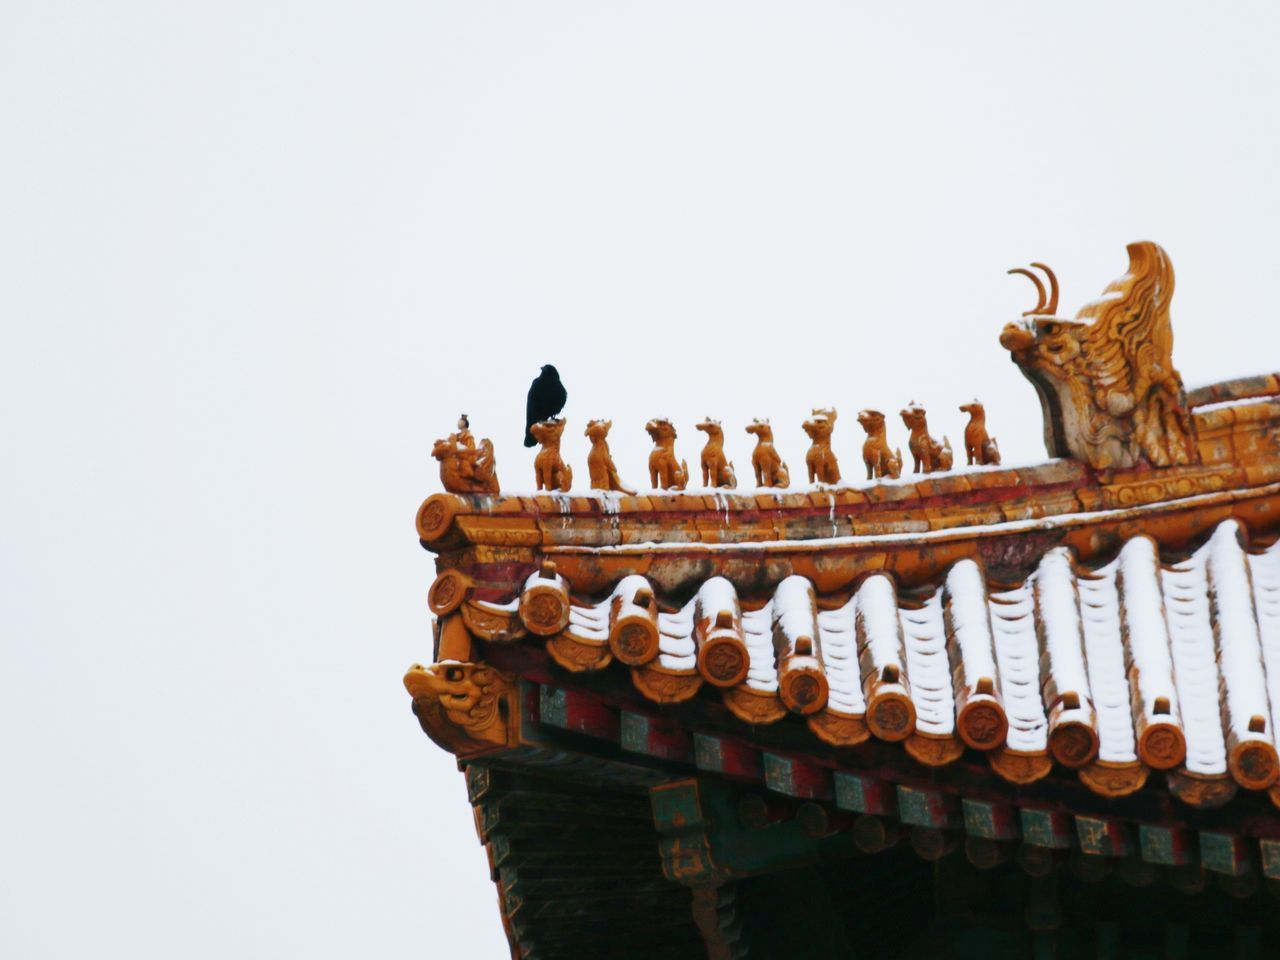 animal representation, sculpture, clear sky, architecture, copy space, low angle view, no people, statue, history, built structure, roof, day, building exterior, outdoors, sky, dragon, chinese dragon